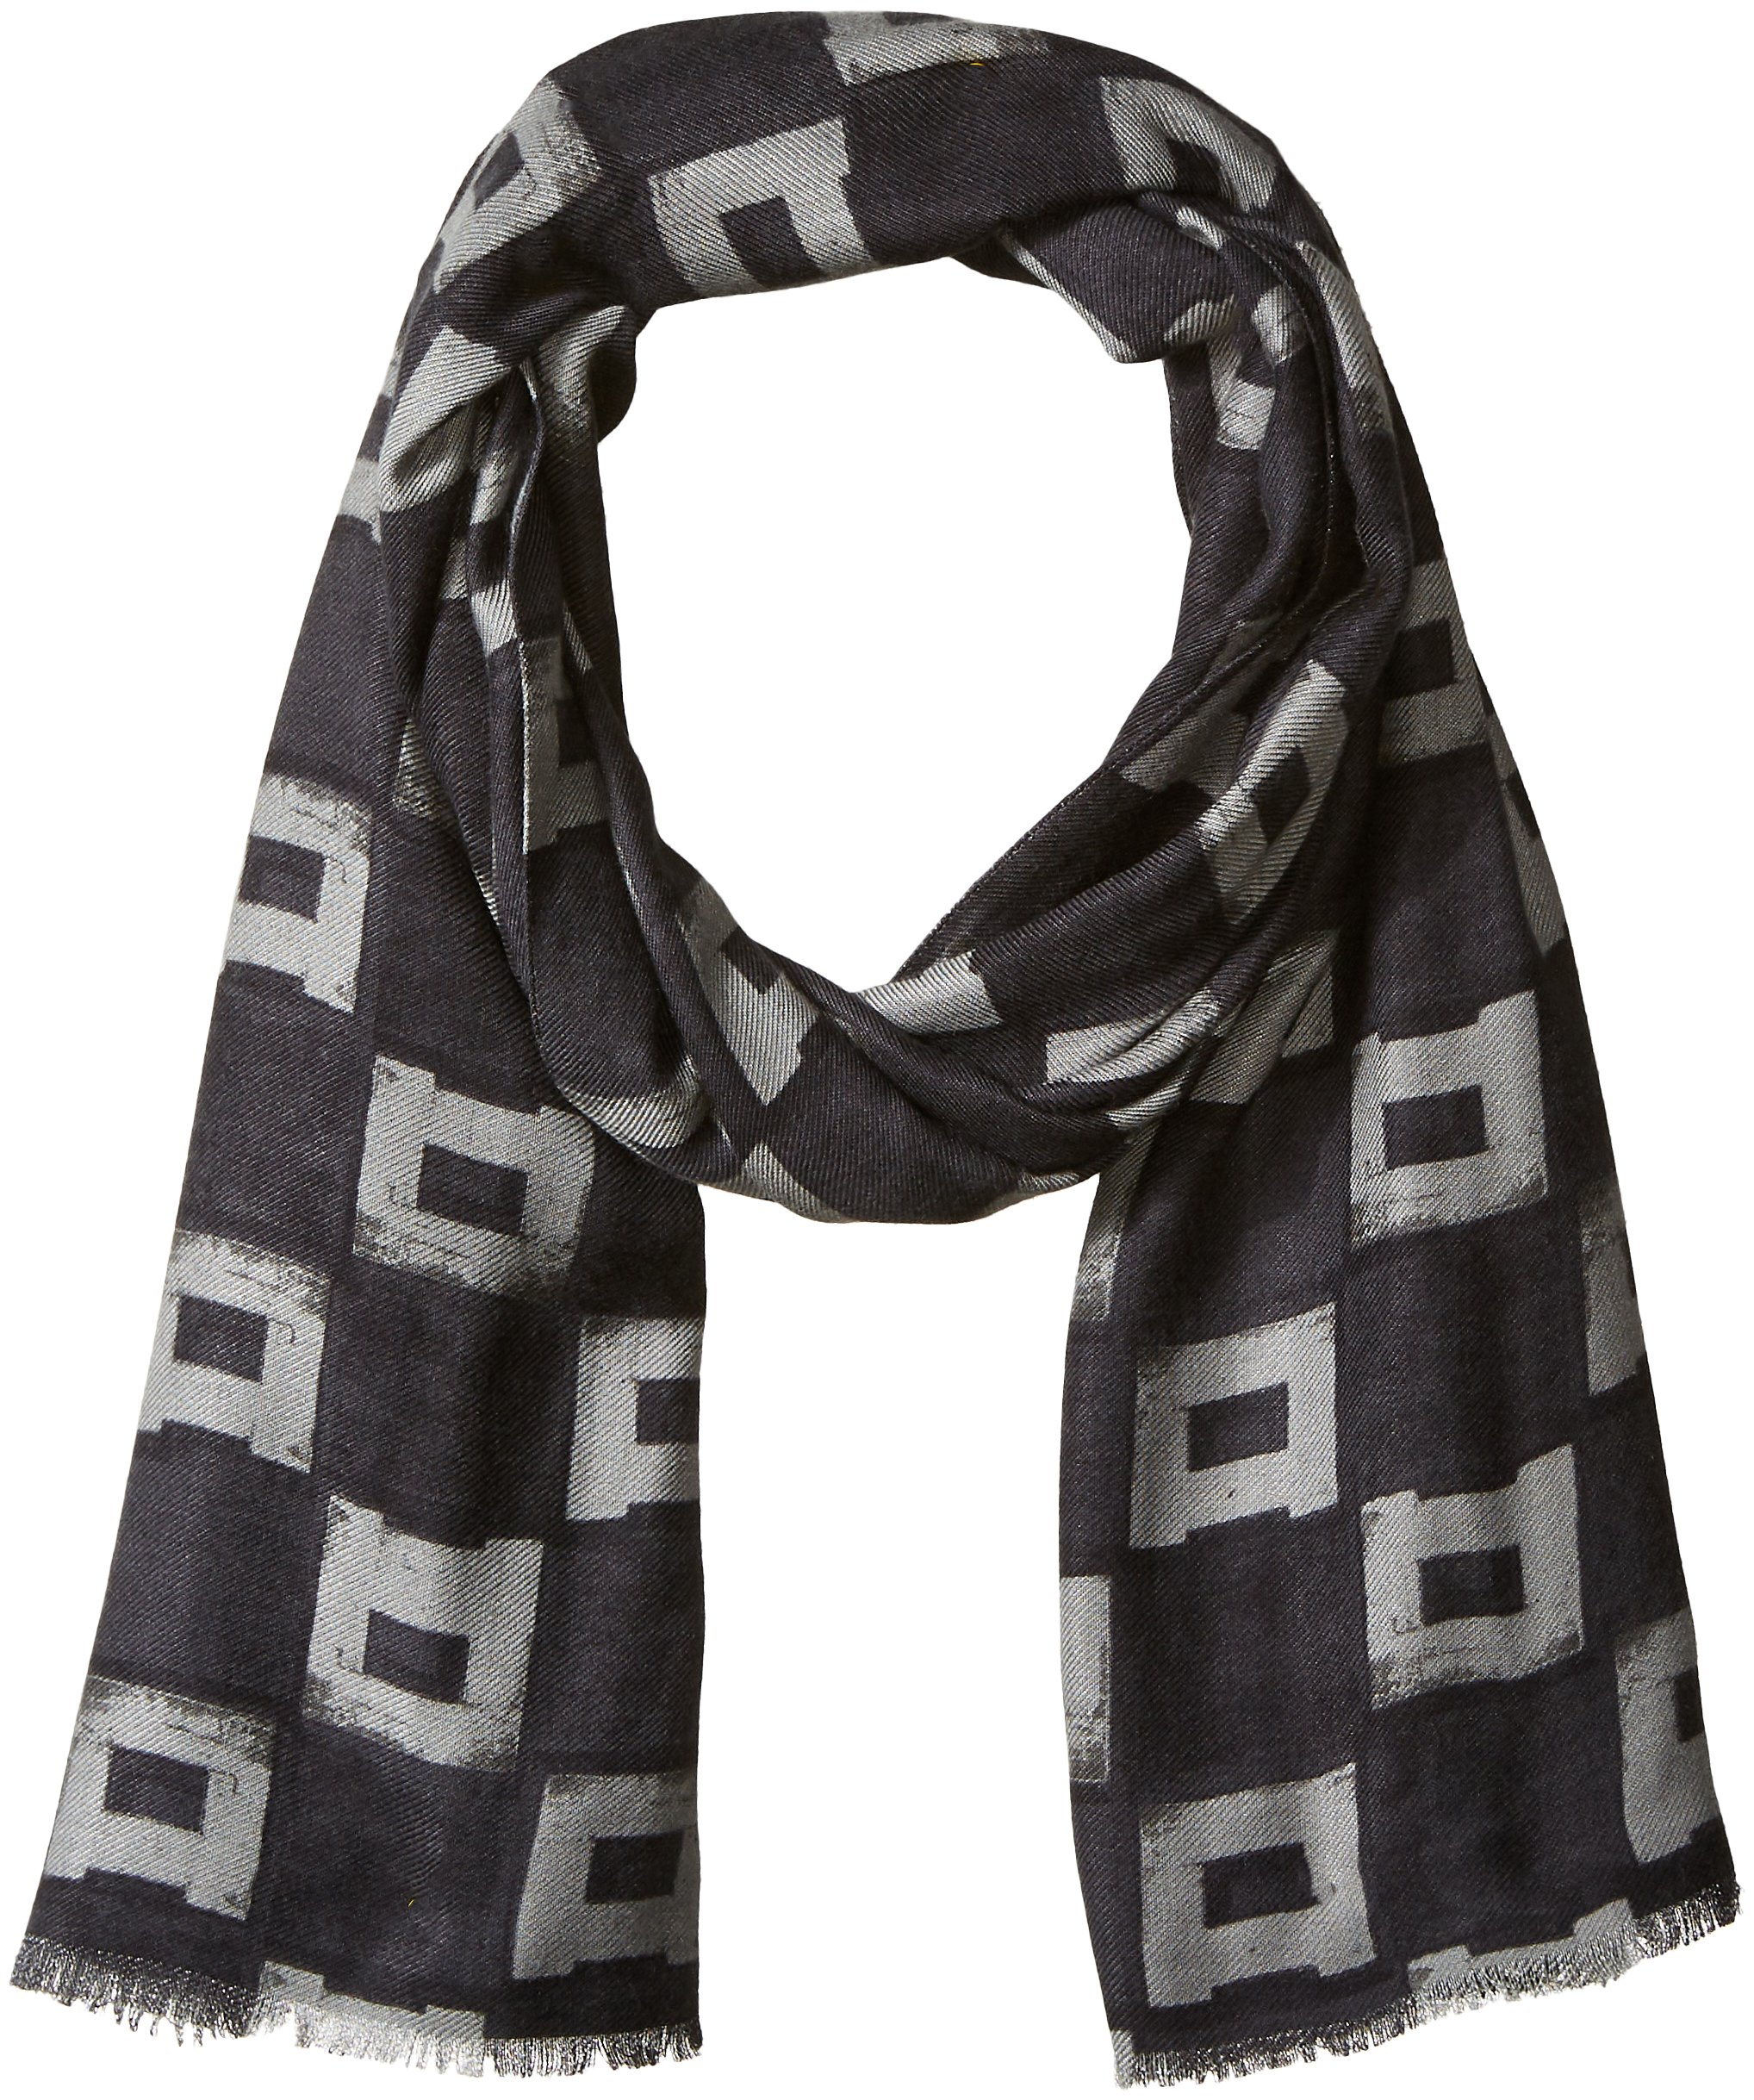 Armani Jeans Men's Abstract Pattern Polyester AND Viscose Fabric Scarf, grey square, ONE SIZE